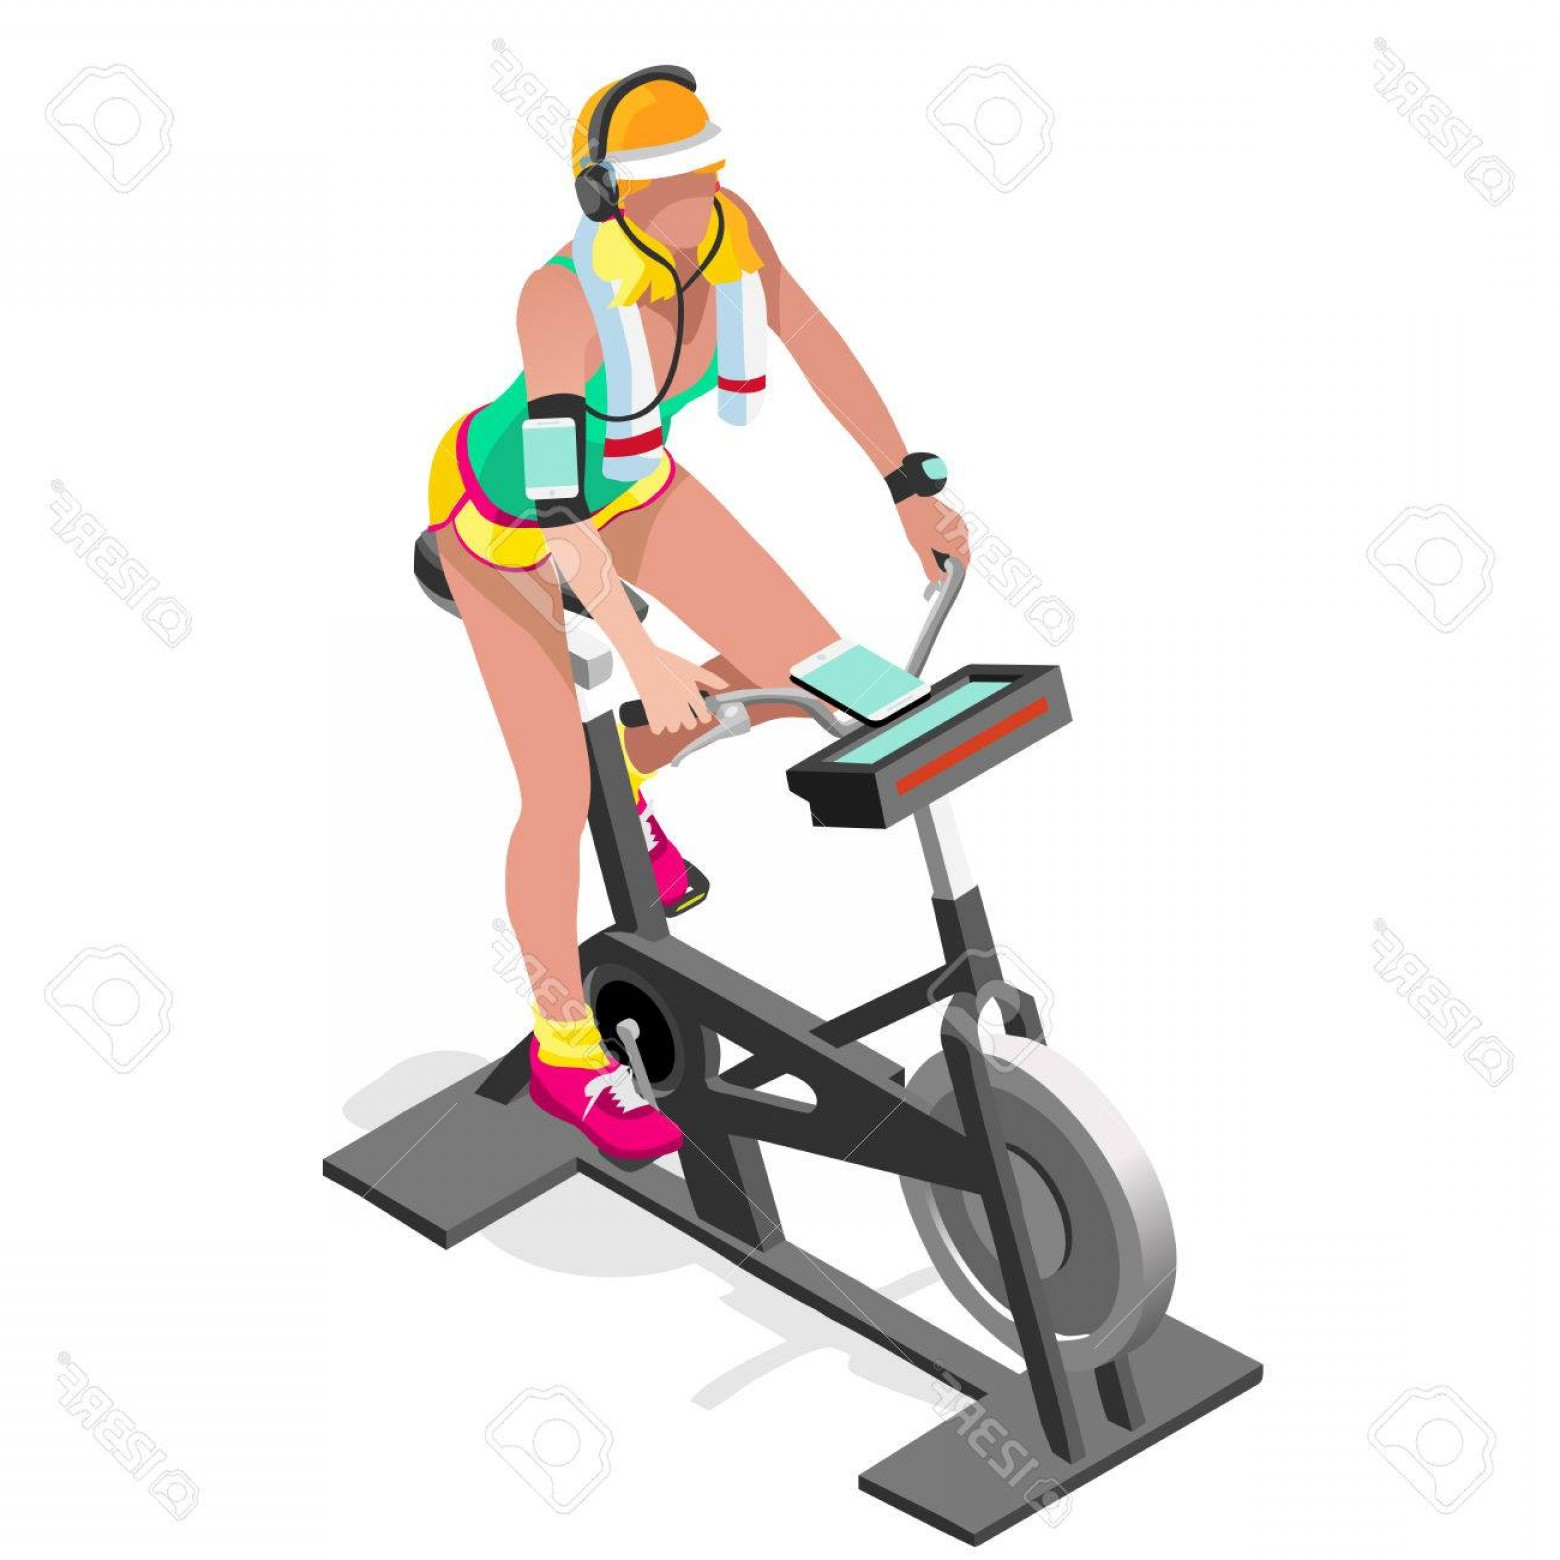 Cycle clipart cycling class. Photostock vector exercise bike clip library stock